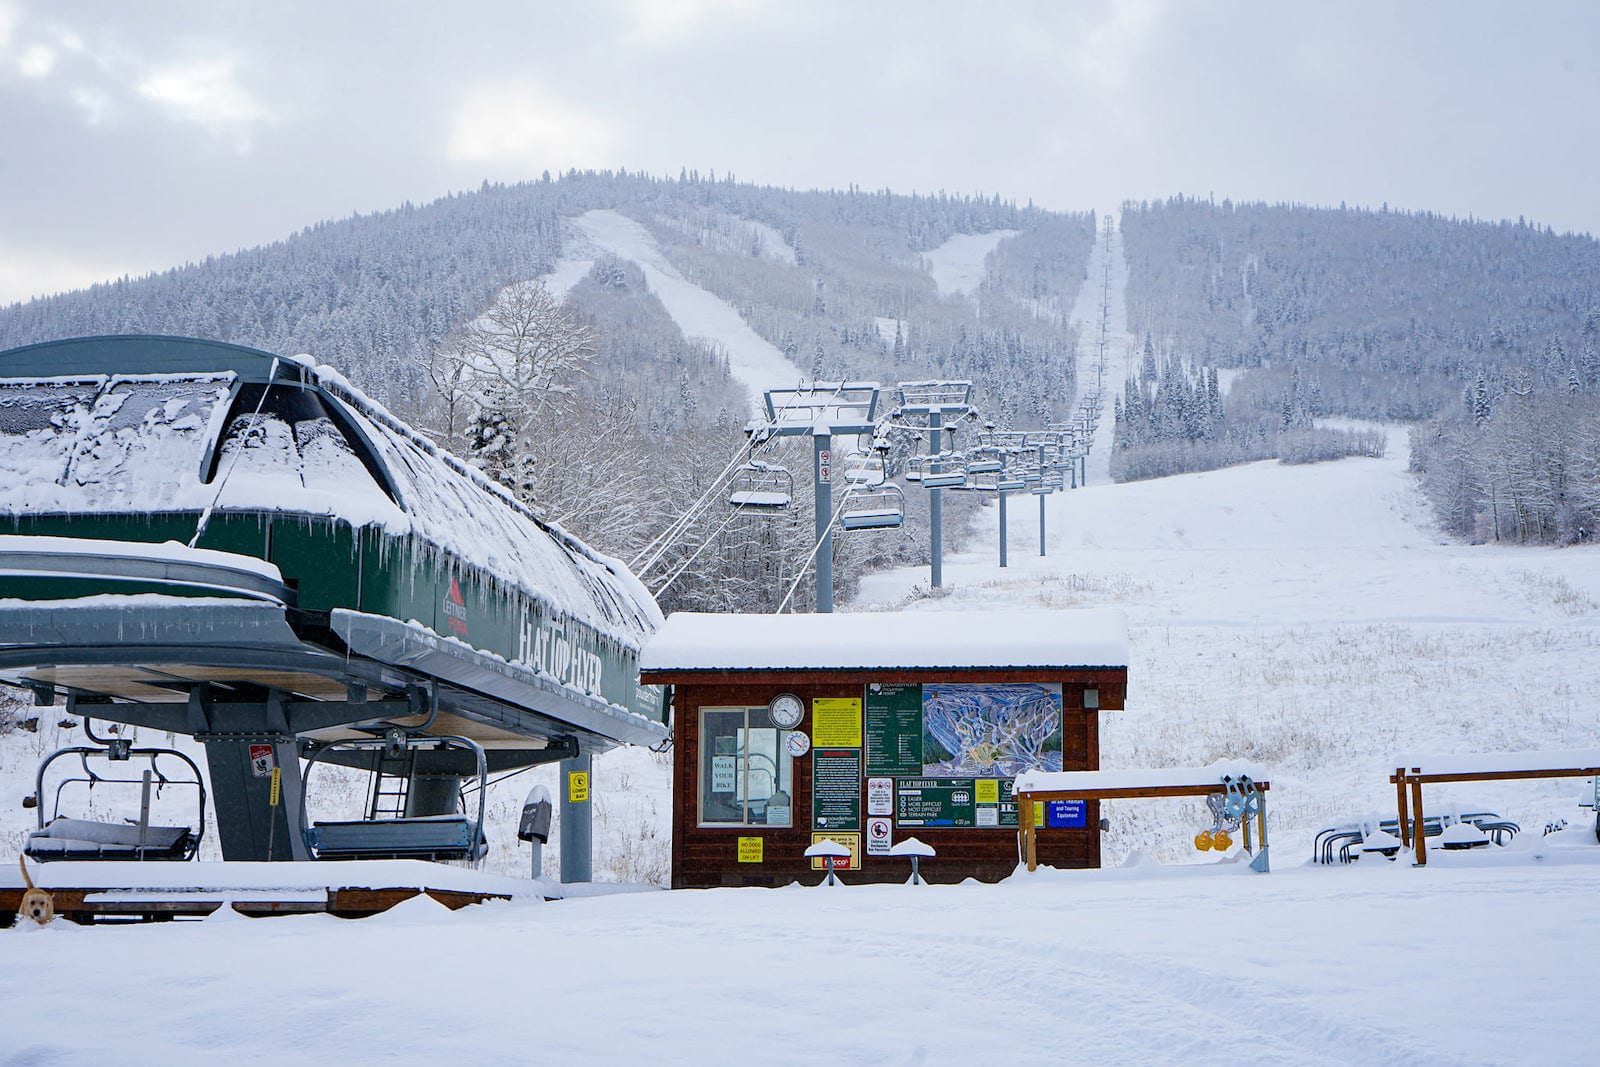 Image of the Flat Top Flyer chairlift at Powderhorn Resort in Mesa, Colorado